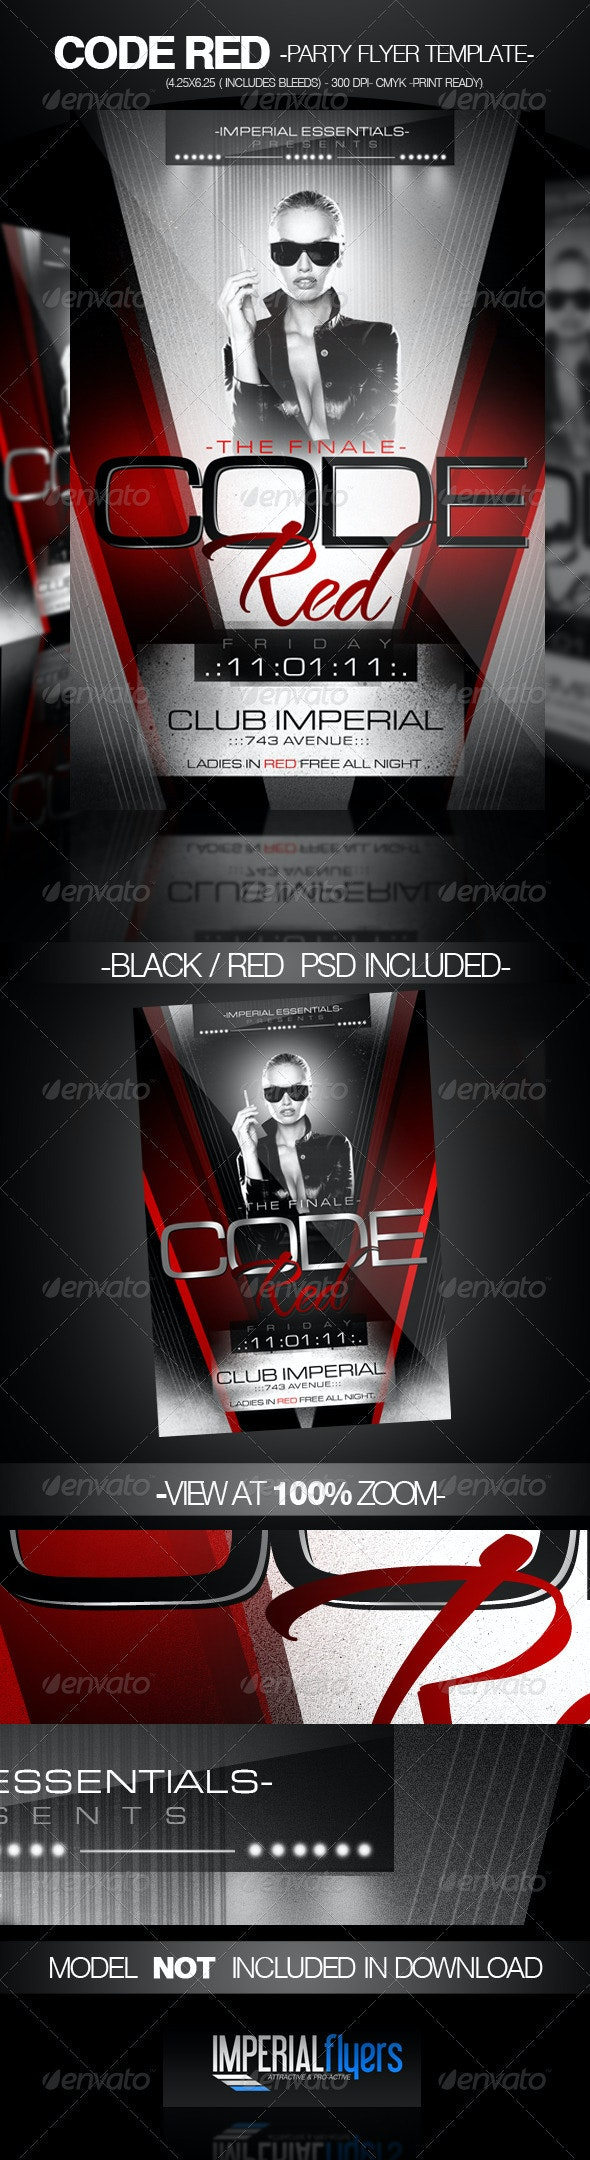 Code Red Party Flyer - Clubs & Parties Events